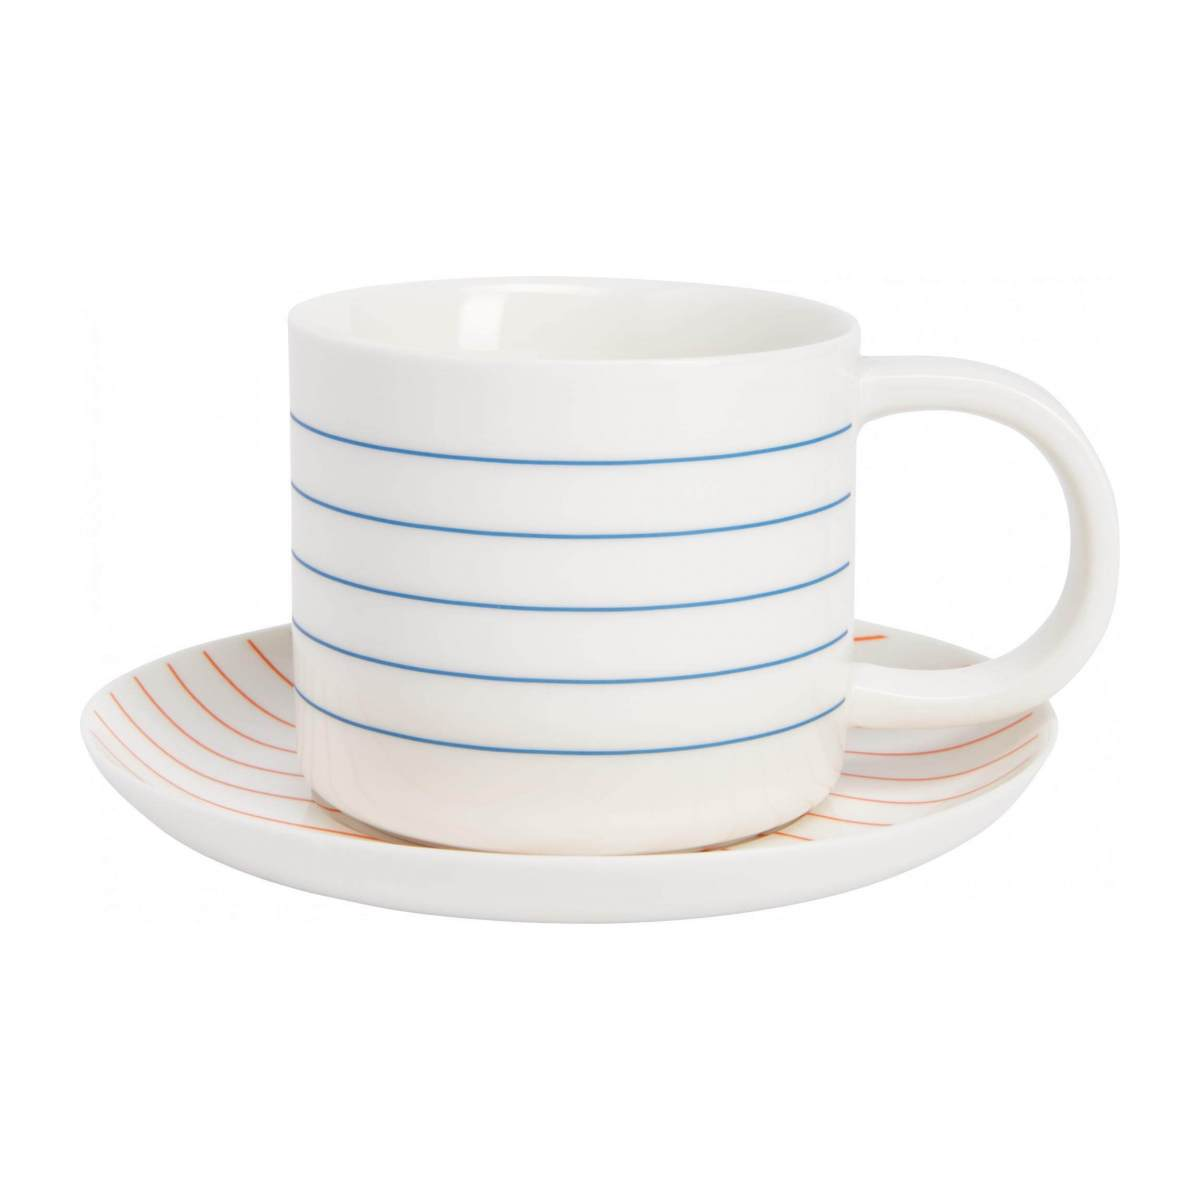 Tea cup et soucoupe made of porcelain, with red stripes n°2